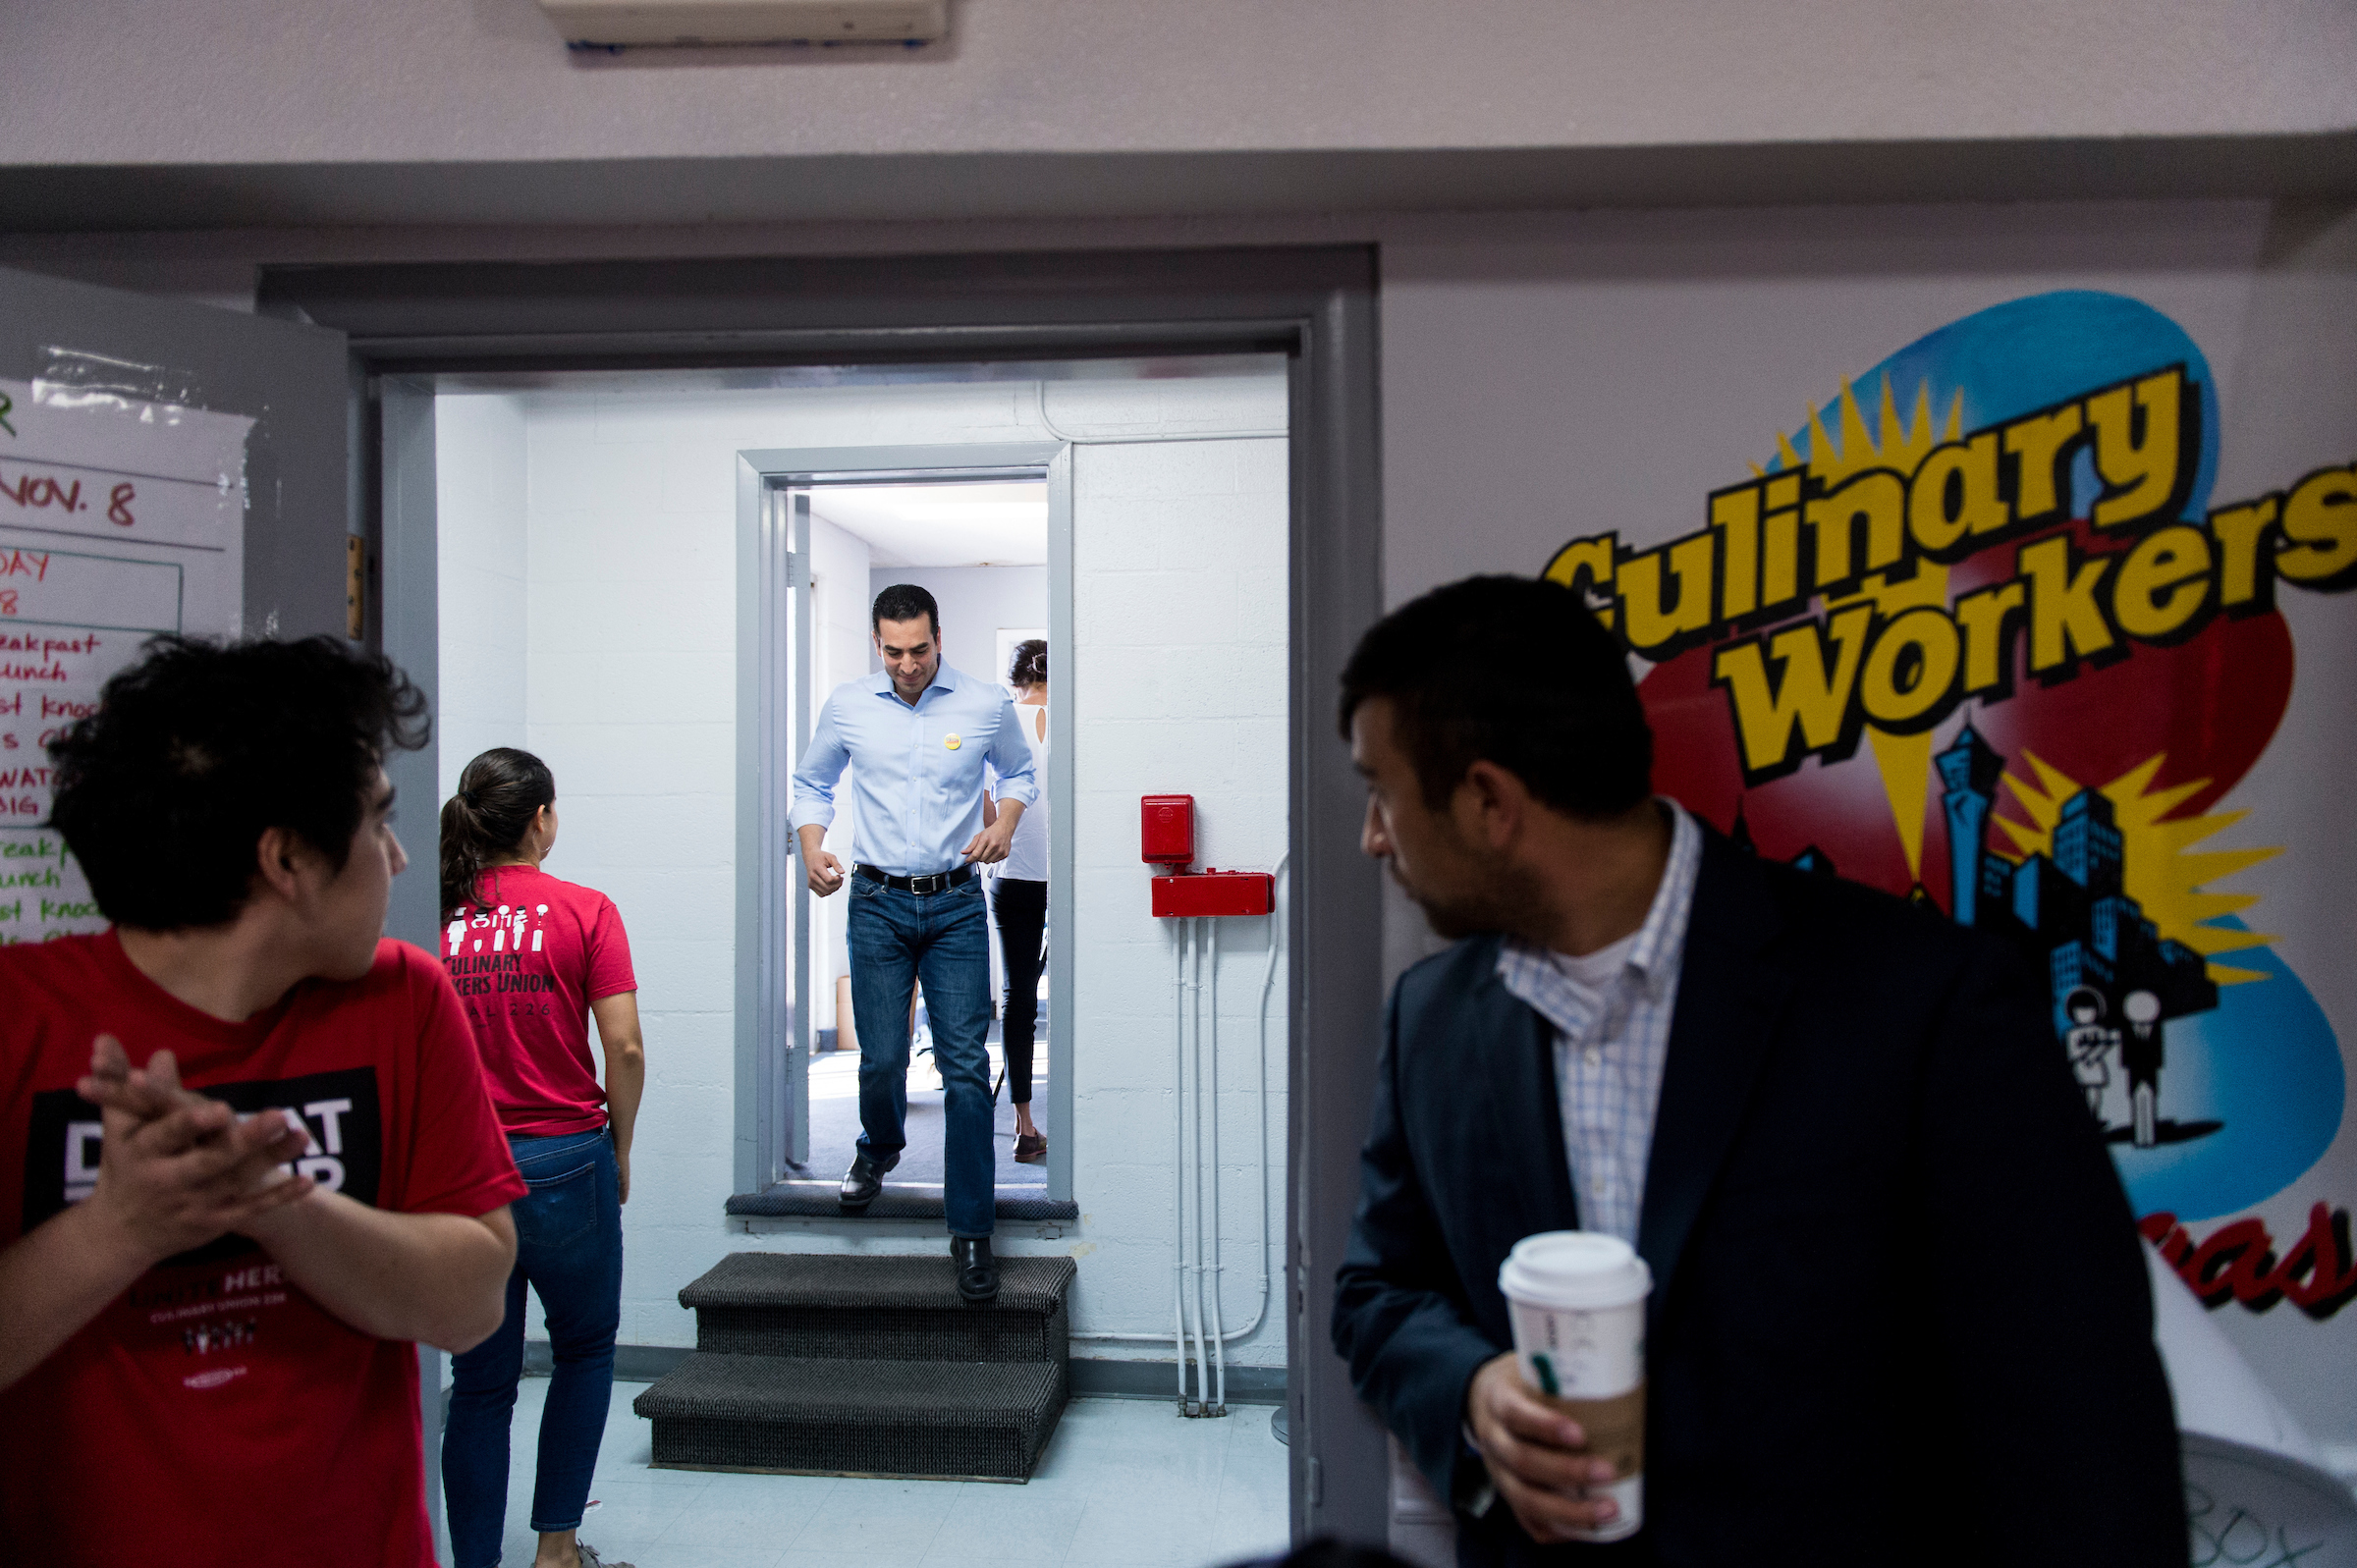 UNITED STATES - NOVEMBER 7: Ruben Kihuen, Democratic candidate for Nevada's 4th Congressional district, arrives to speak during a canvassing kickoff rally with Catherine Cortez Masto, Democratic candidate for U.S. Senate from Nevada, at the influential Culinary Workers Union Local 226 in Las Vegas on Monday, Nov. 7, 2016. The mostly hispanic labor union is a powerhouse in Democratic politics in the Nevada. (Photo By Bill Clark/CQ Roll Call)